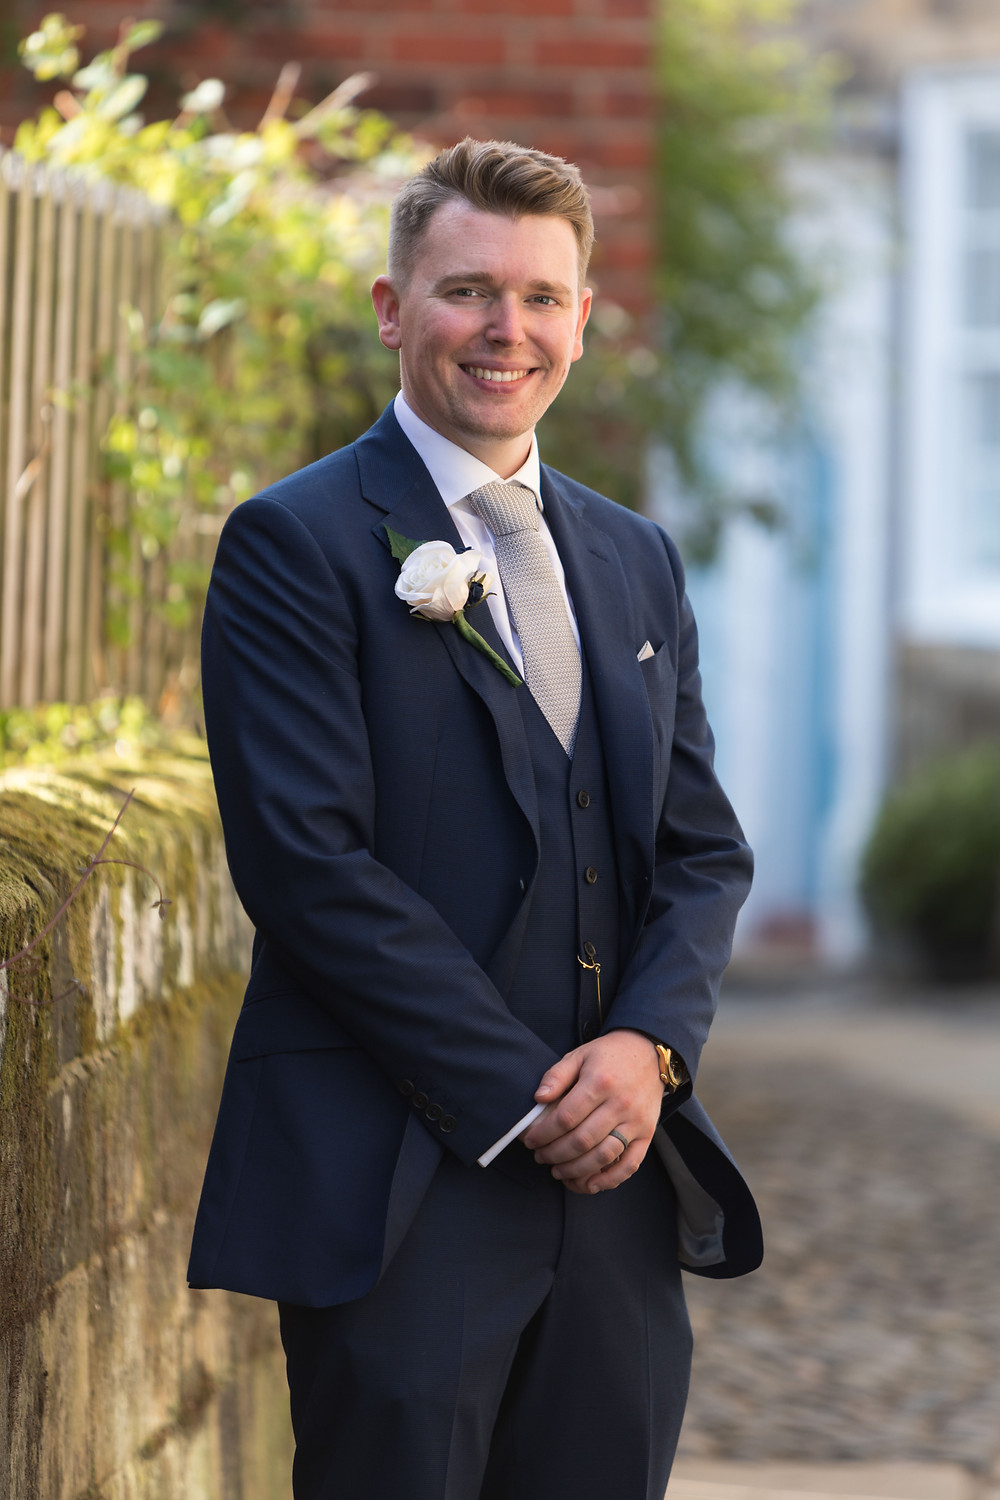 Portrait of the Groom by Jack Cook Photography